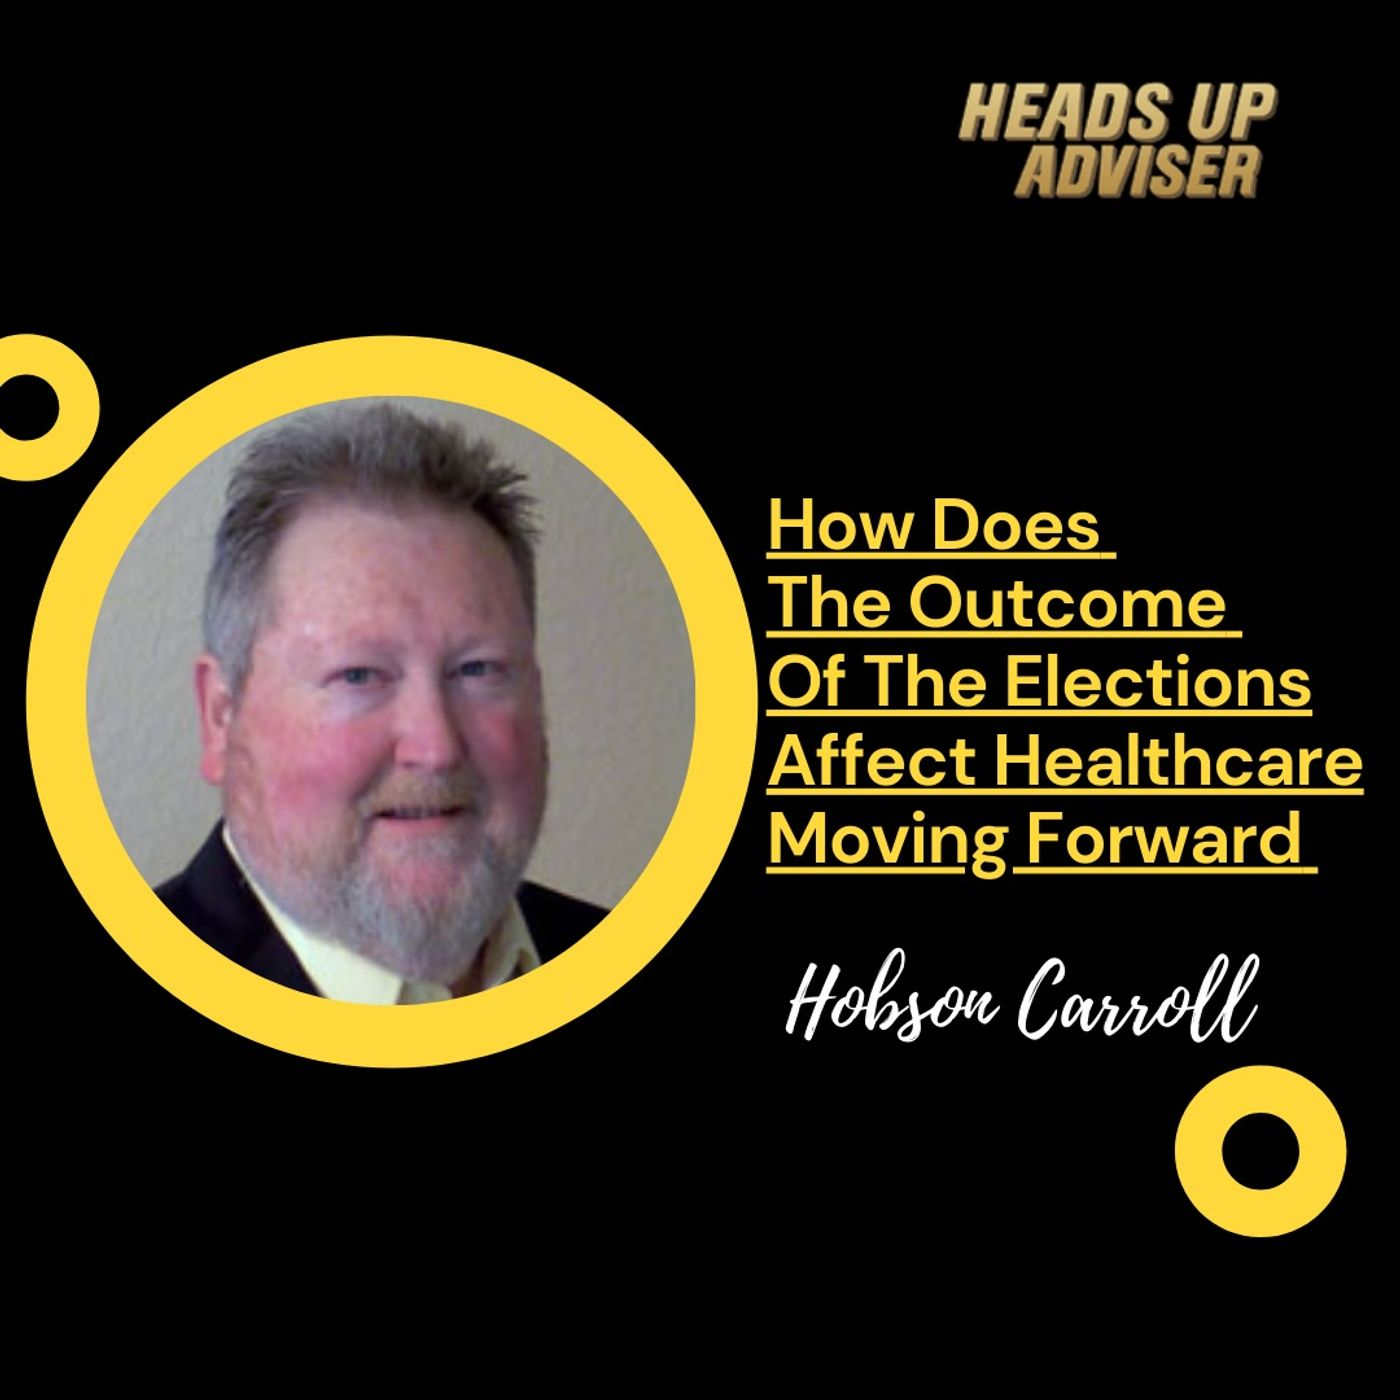 How Does The Outcome Of The Election Affect Healthcare Moving Forward with Hobson Carroll